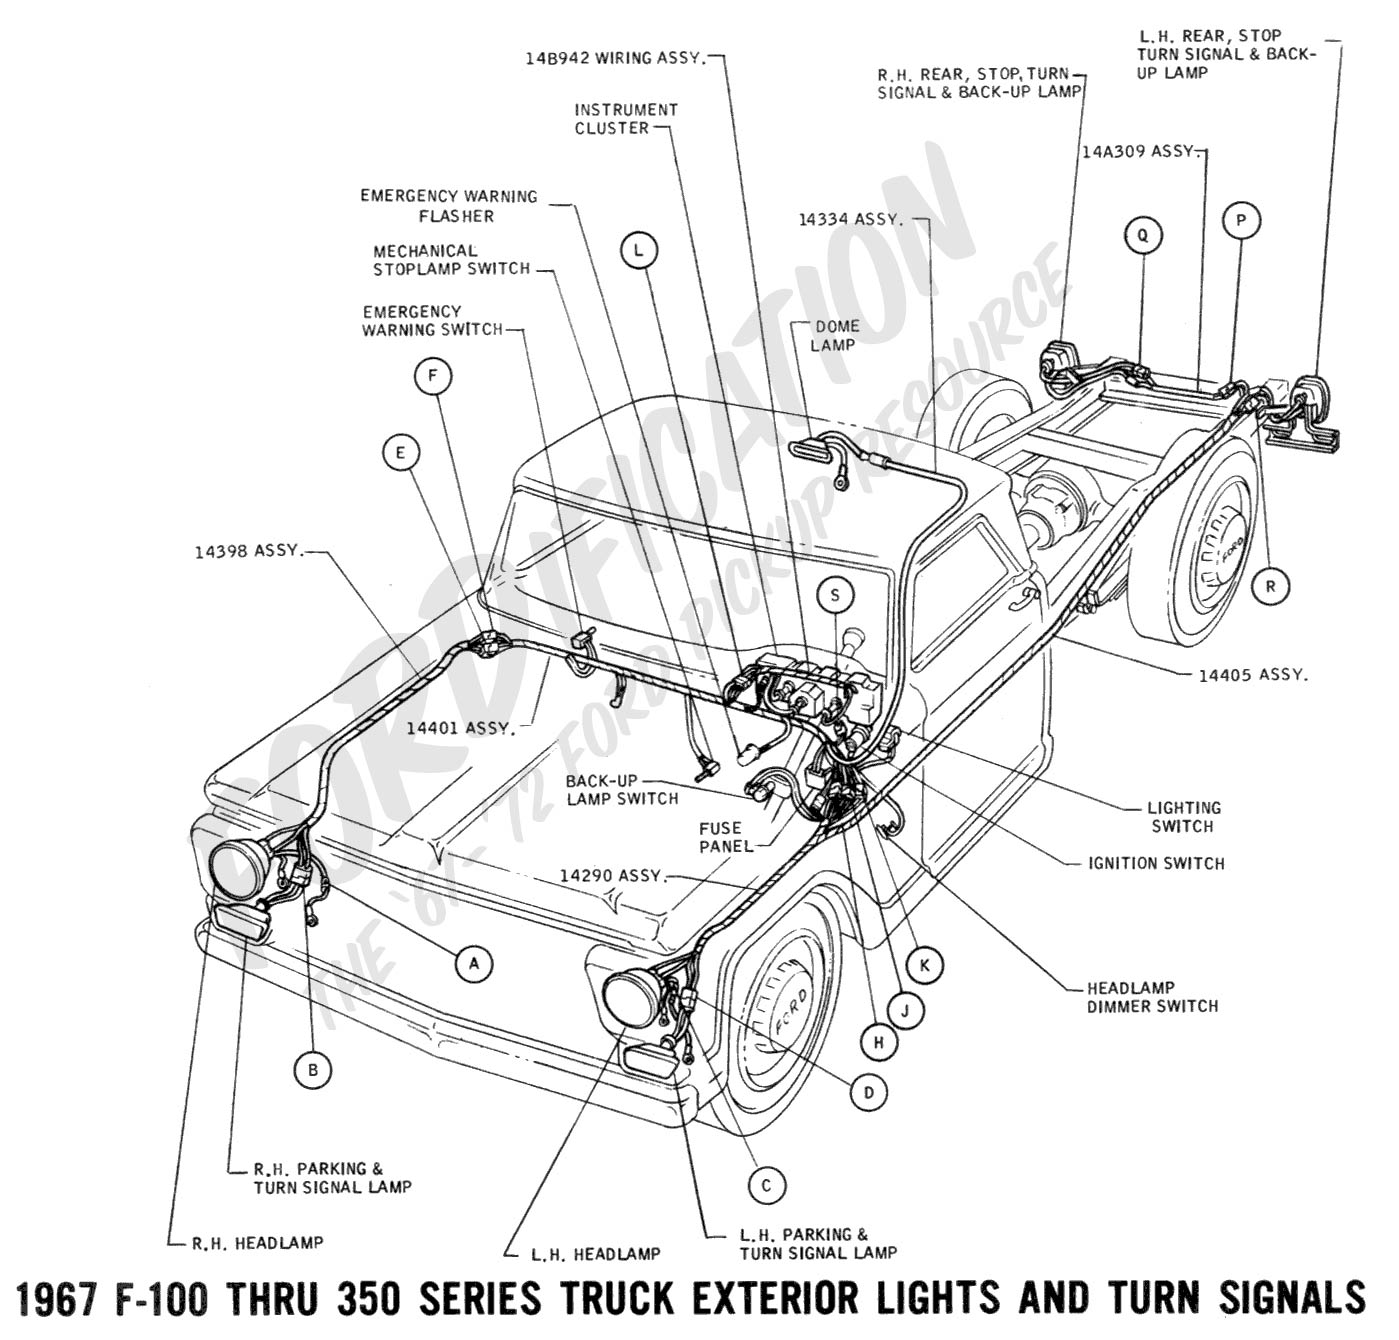 94 F150 Transmission Wiring Diagram besides P 0900c15280217fab as well 1153375 1993 E350 Motorhome Start System besides Showthread in addition 829333 Bushing On Gear Shifter Column. on 94 ford ranger steering column